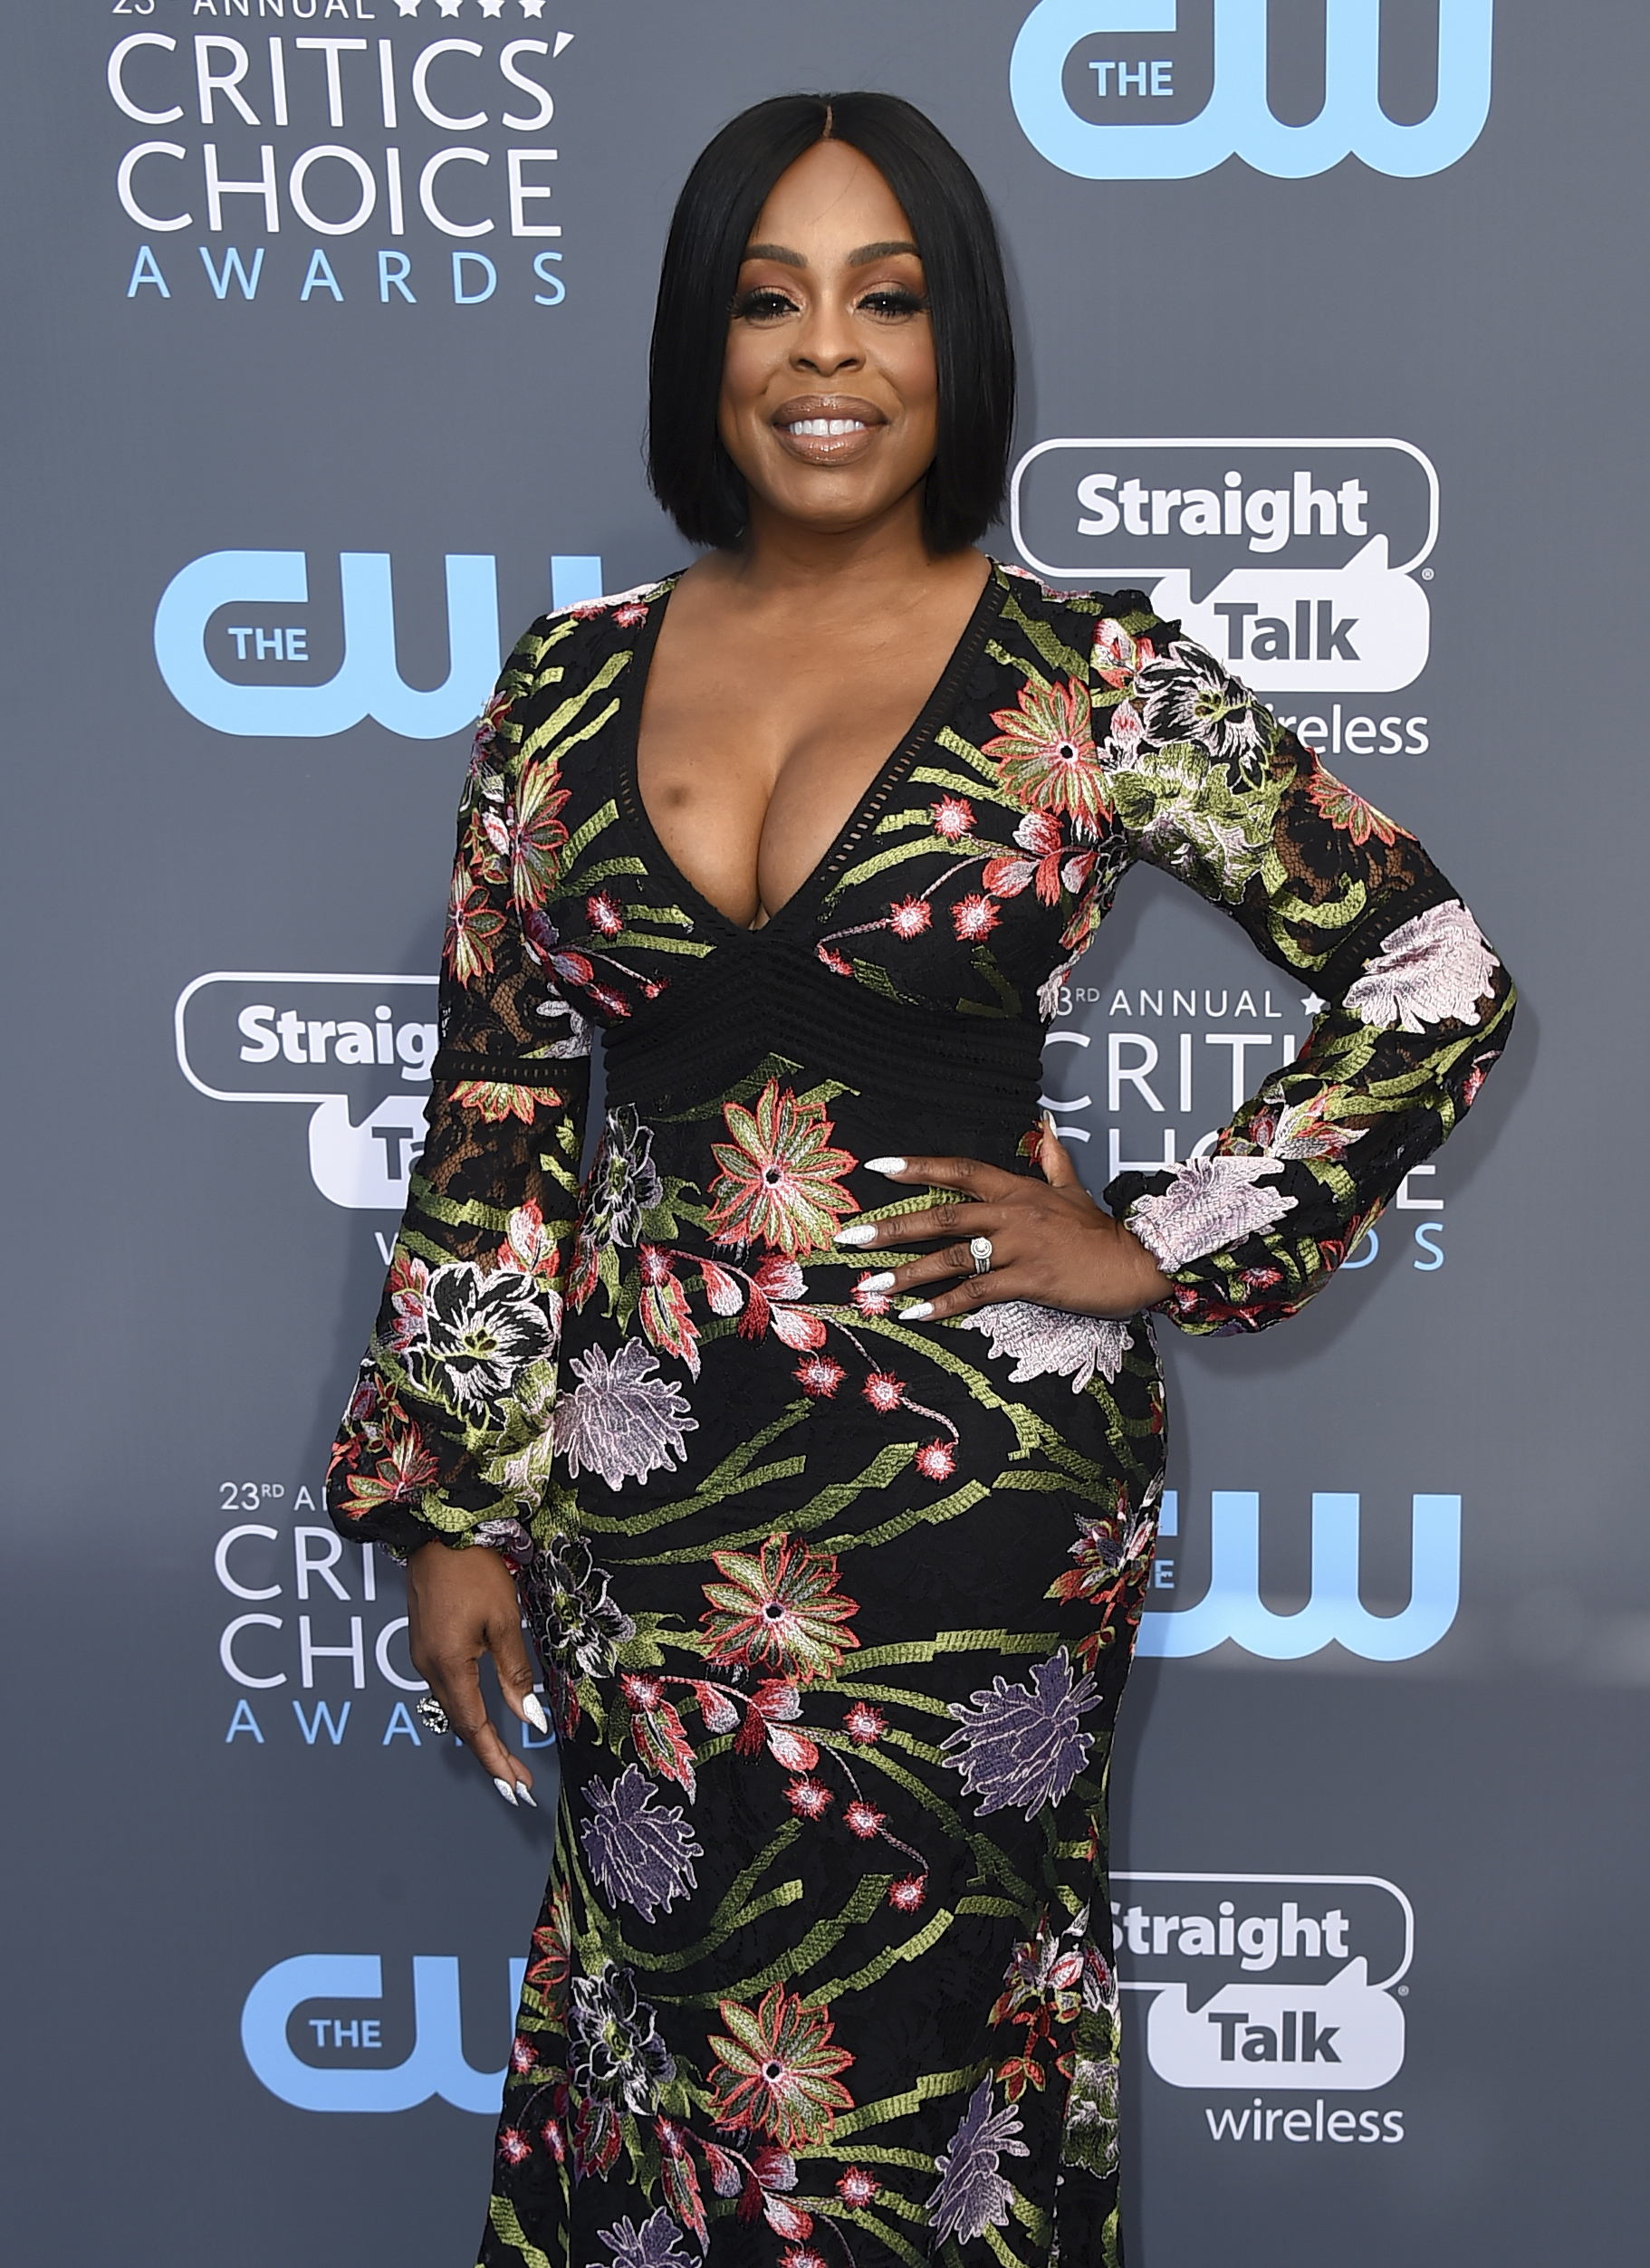 <div class='meta'><div class='origin-logo' data-origin='AP'></div><span class='caption-text' data-credit='Jordan Strauss/Invision/AP'>Niecy Nash arrives at the 23rd annual Critics' Choice Awards at the Barker Hangar on Thursday, Jan. 11, 2018, in Santa Monica, Calif.</span></div>